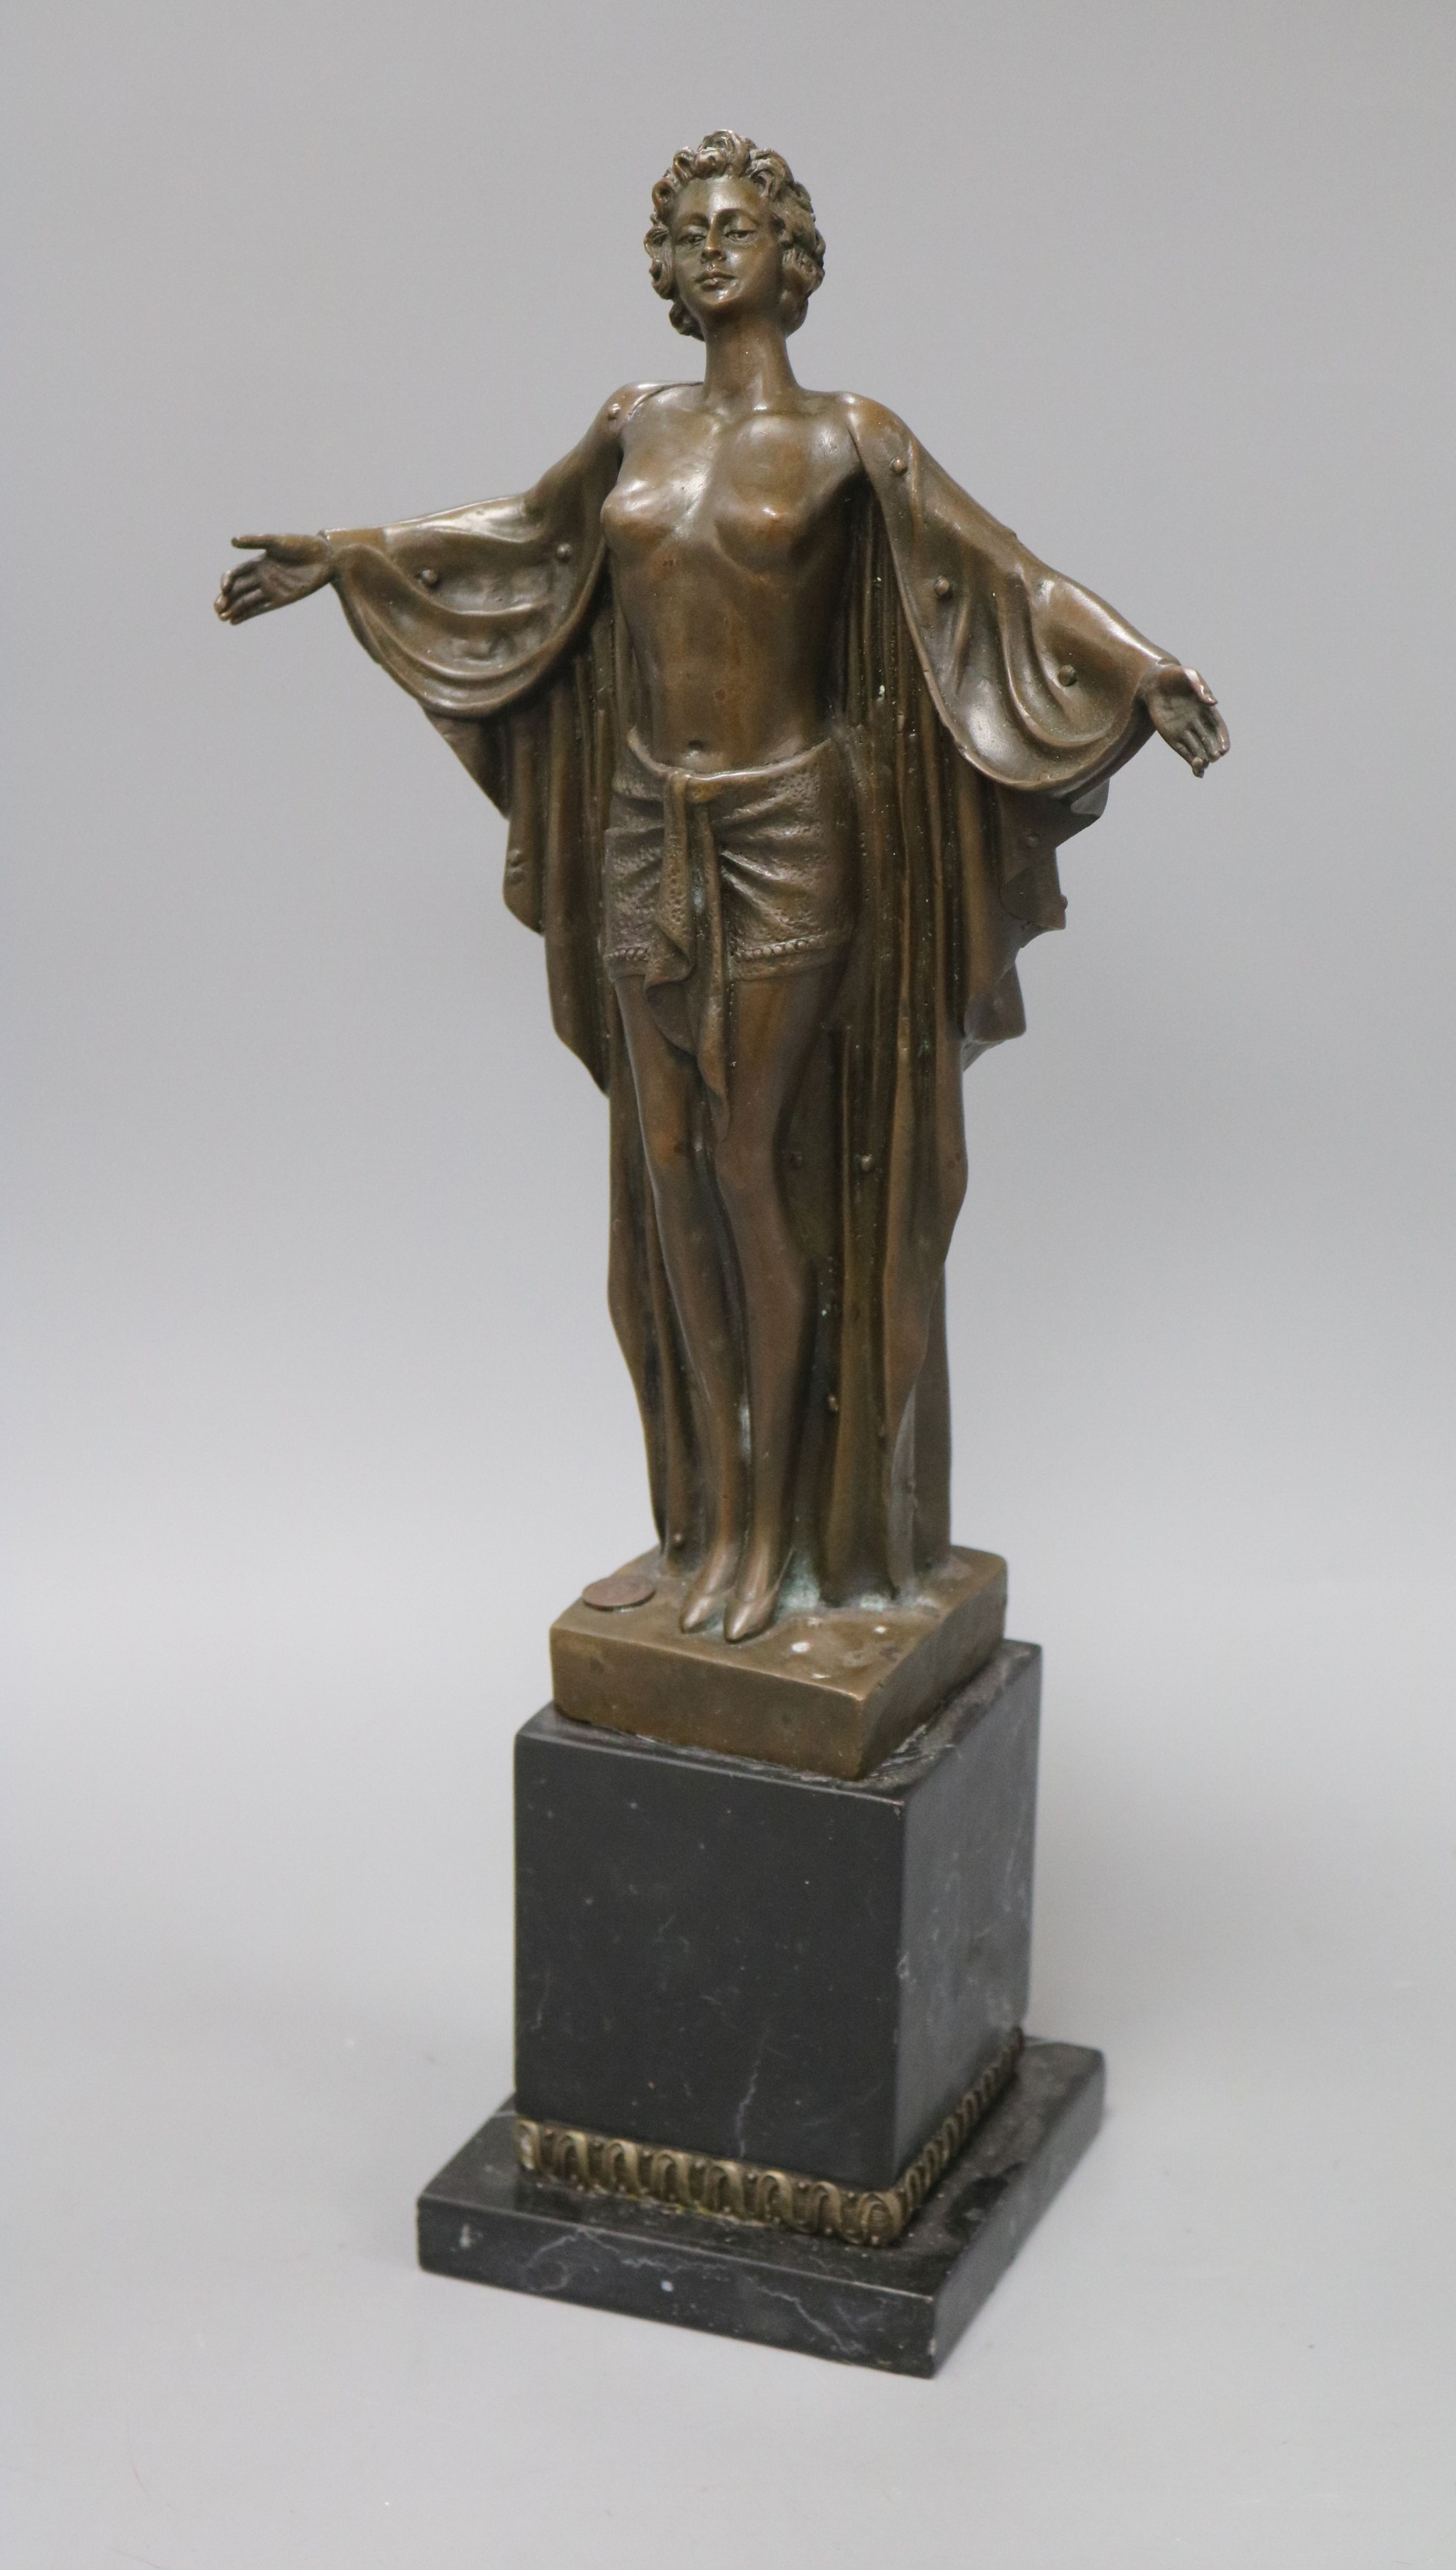 Lot 44 - An Art Deco style bronze figure of a lady wearing a robe, on marble base, signed D.H. Chiparus